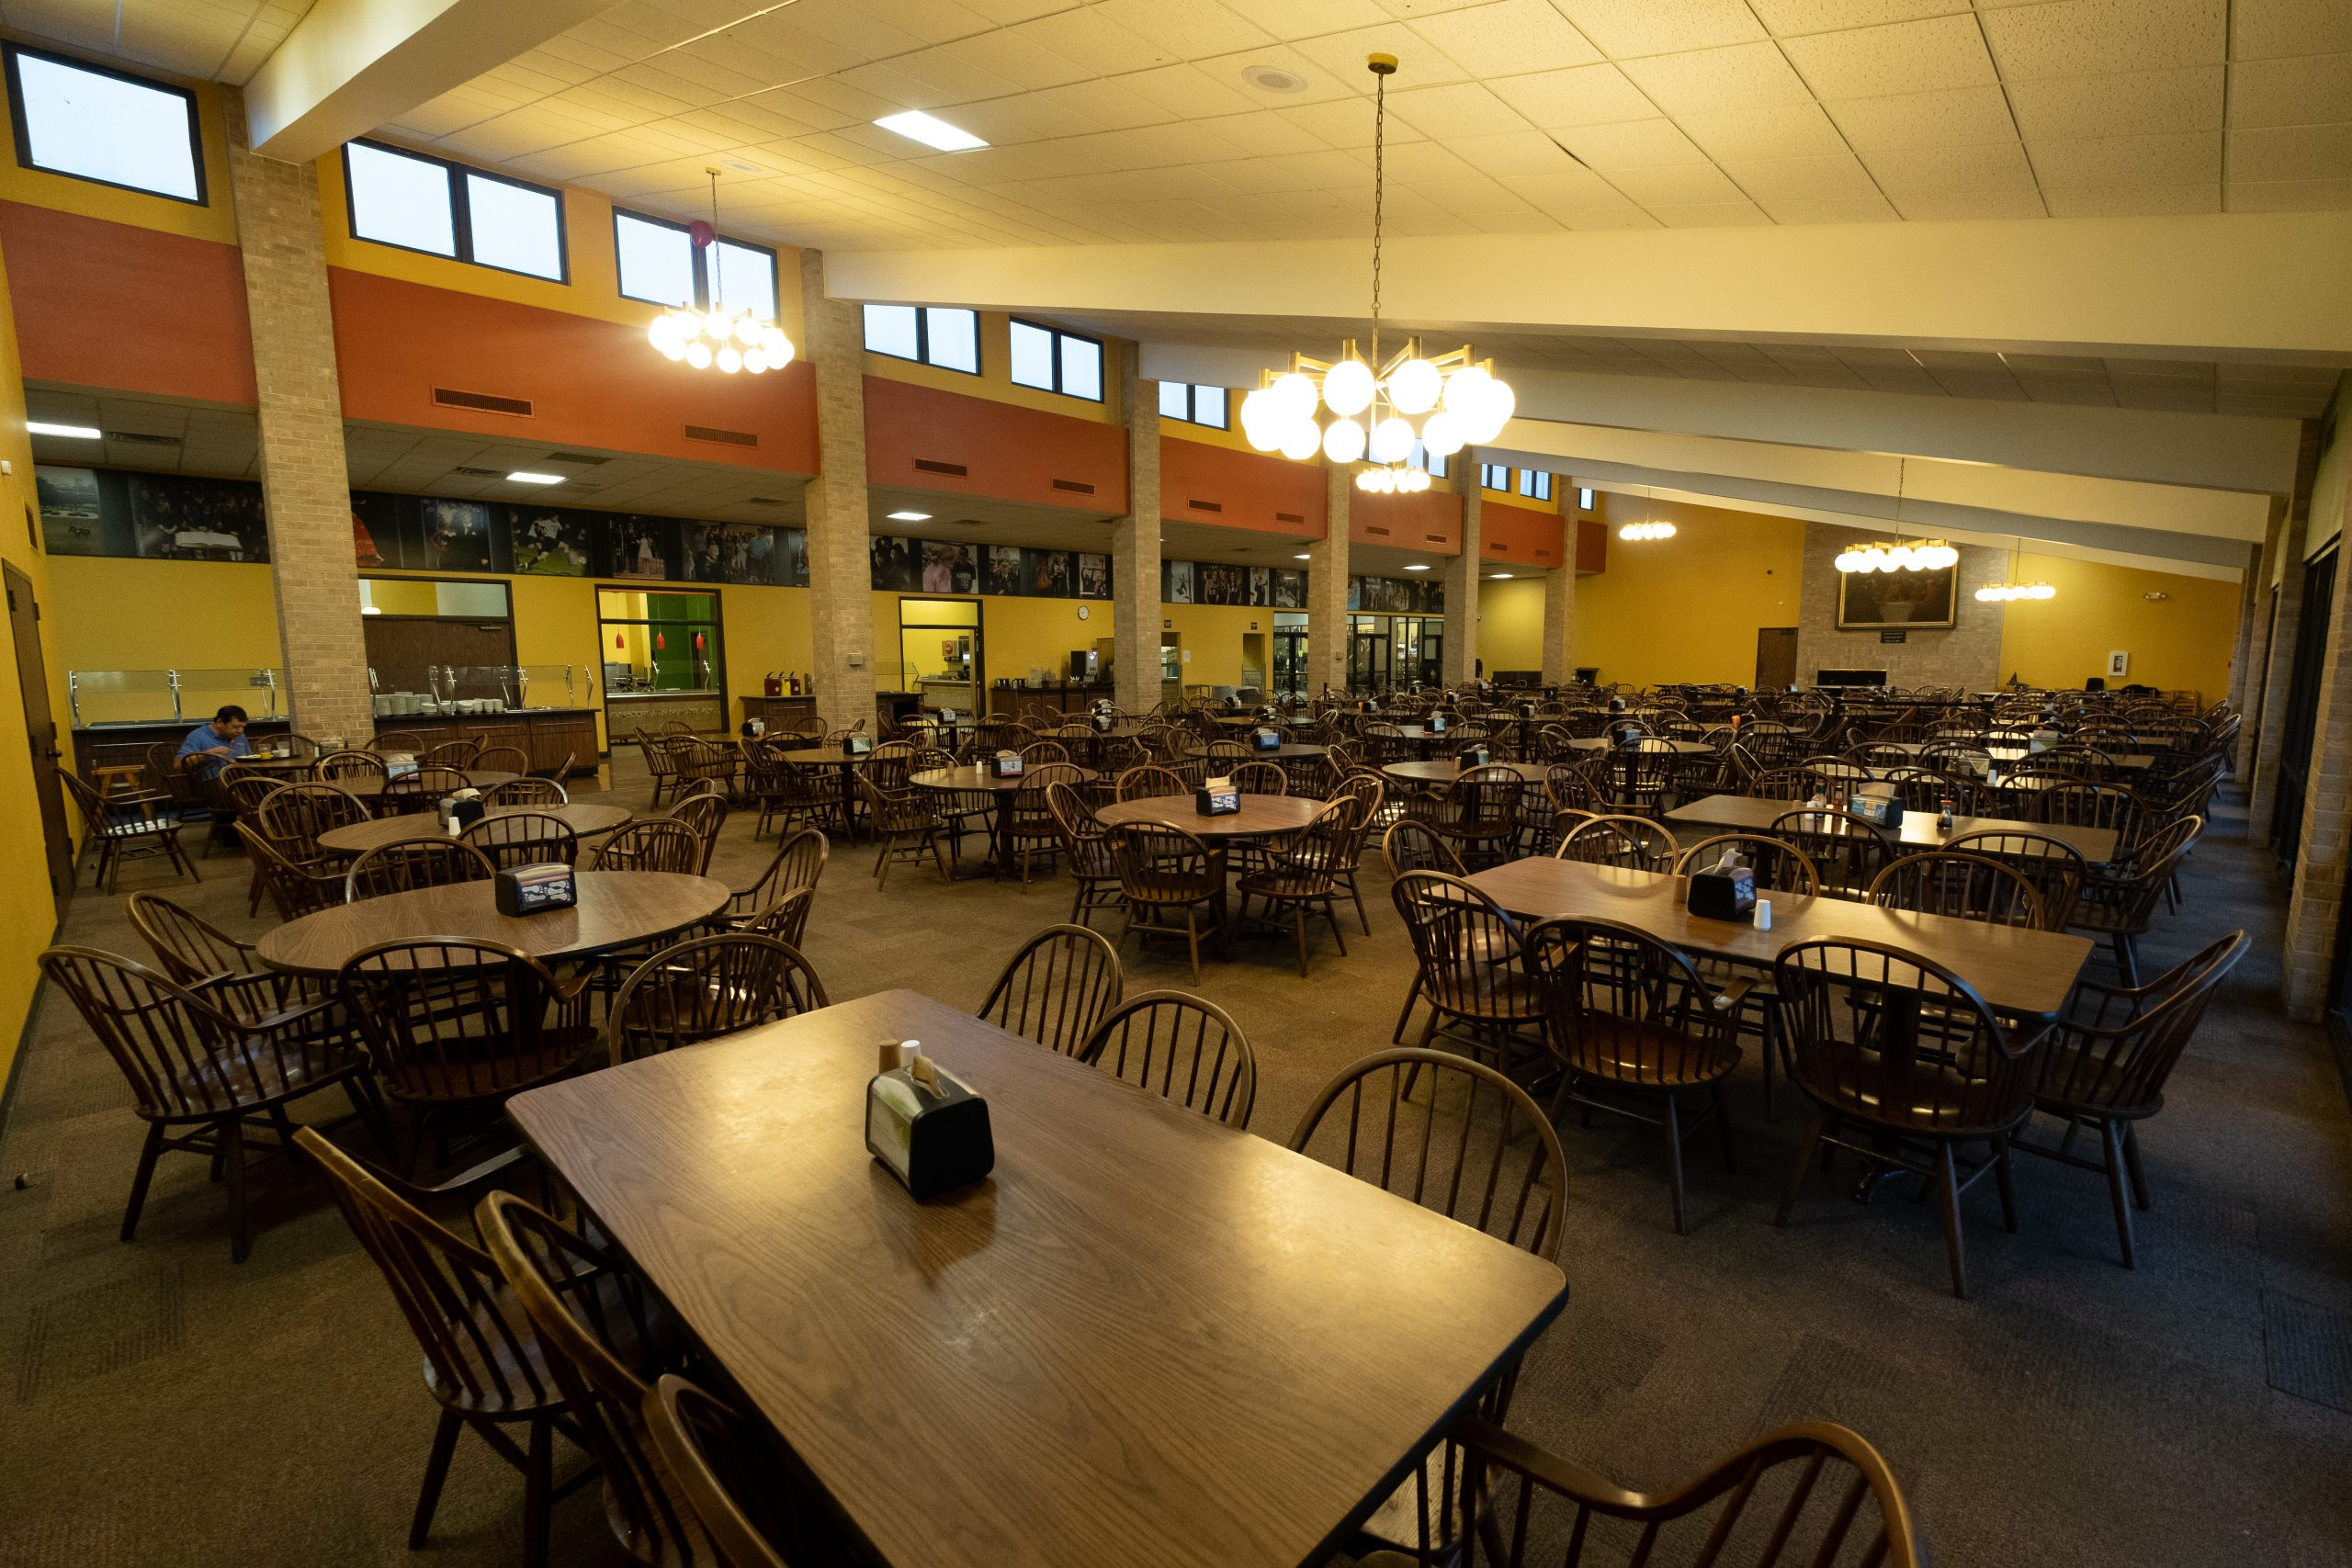 Seating area in the dining hall